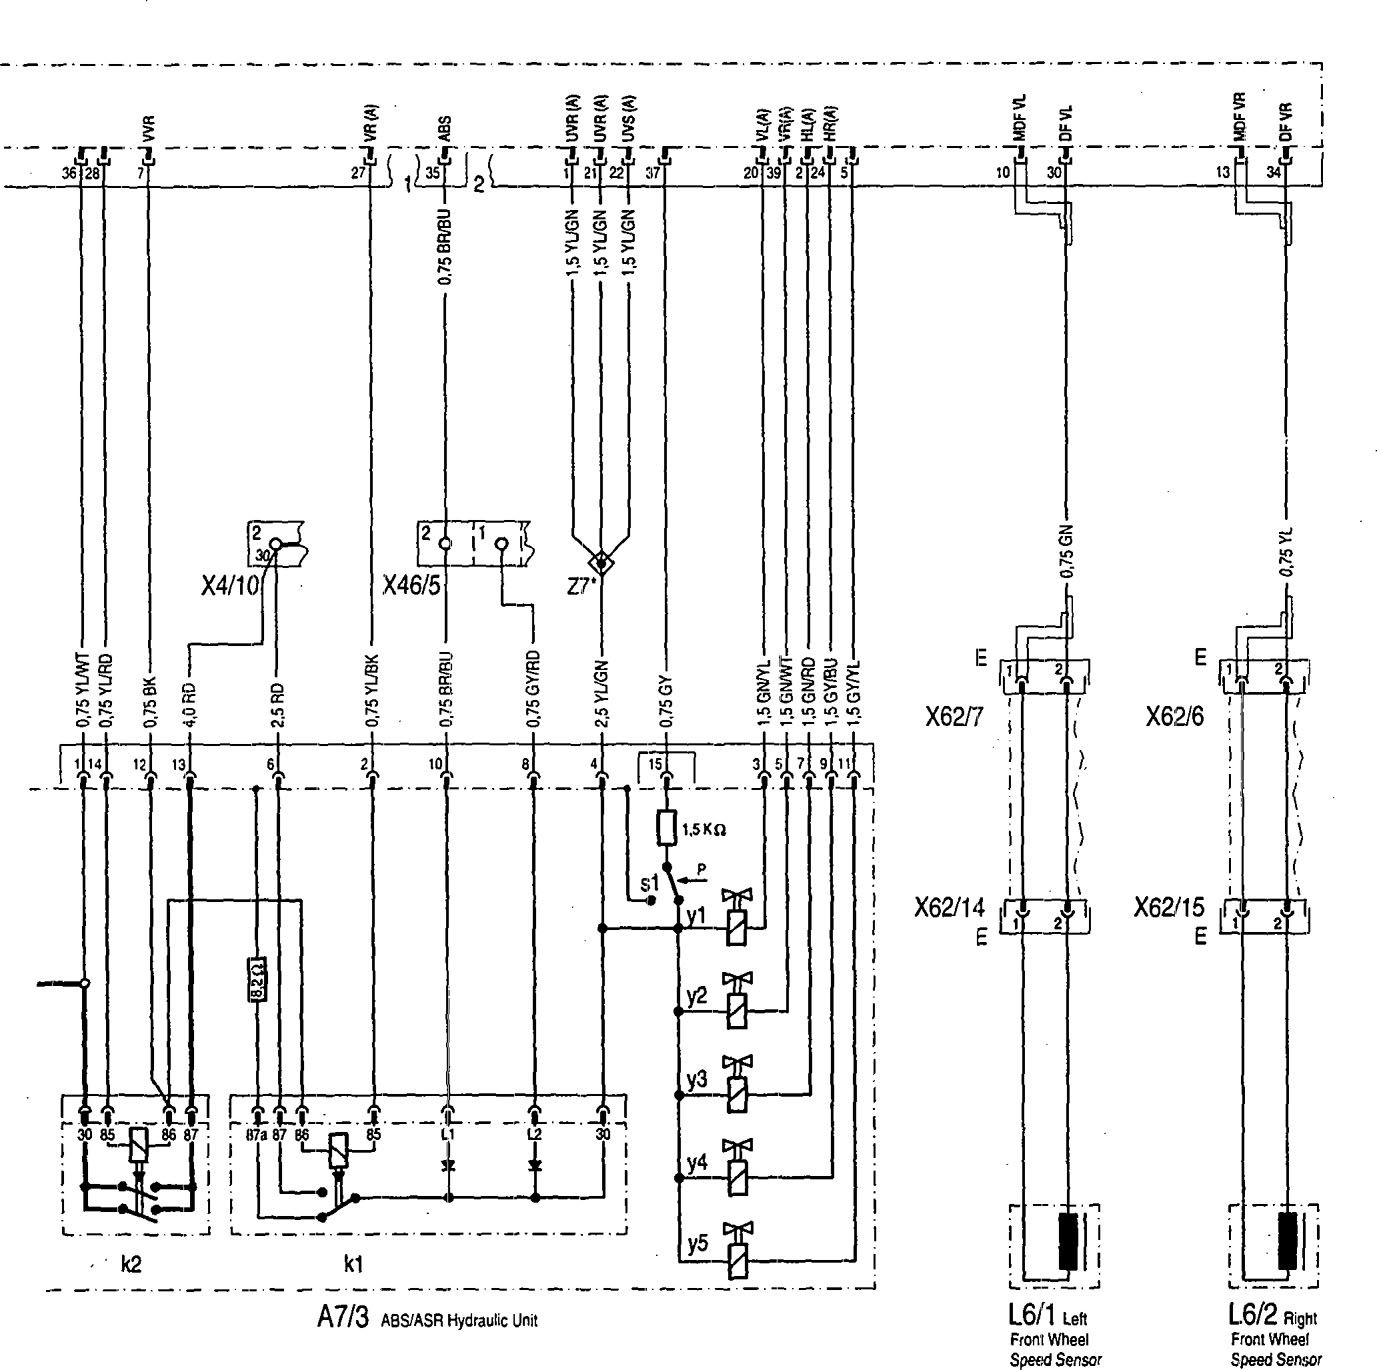 Mercedes Benz 400se 1992 Wiring Diagrams Abs Carknowledge Diagram 300se Part 3